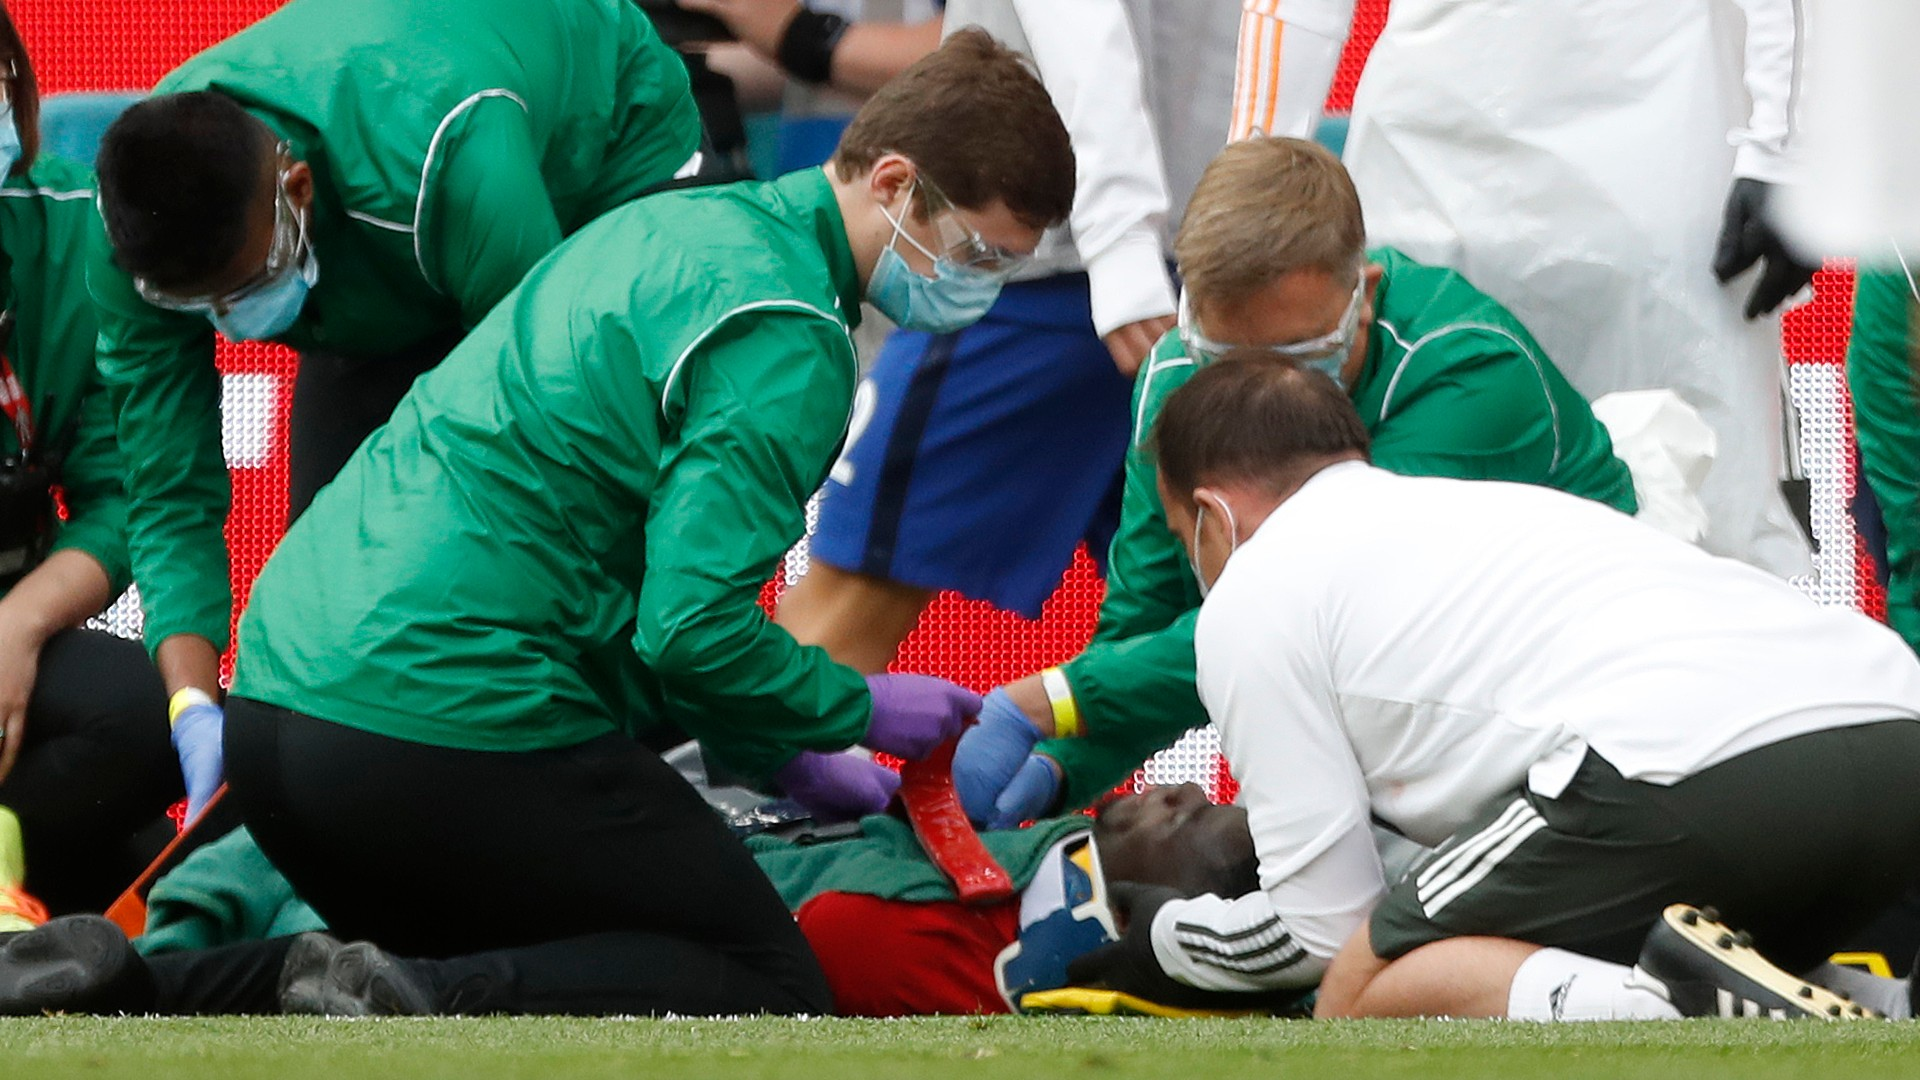 'Just a scare' - Bailly assures Man Utd supporters following head collision at Wembley